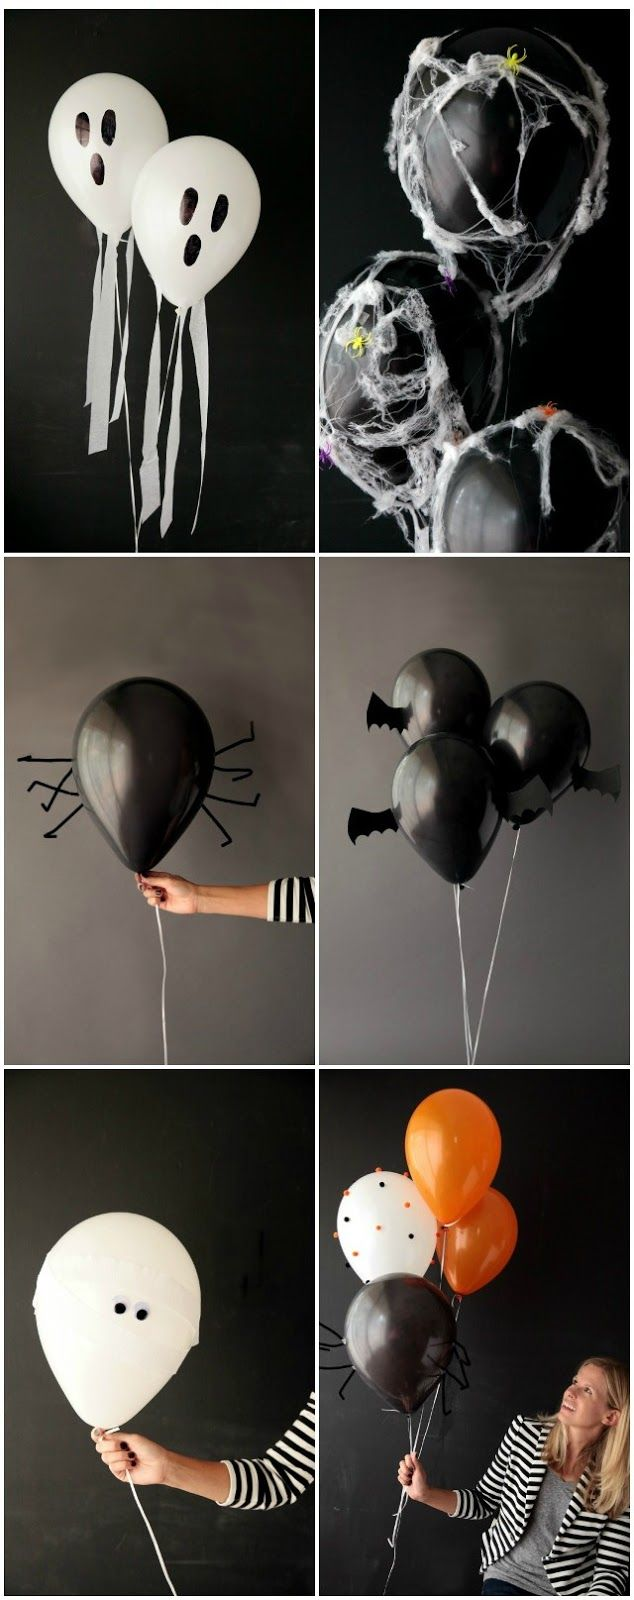 Lots of simple balloon ideas for Halloween!